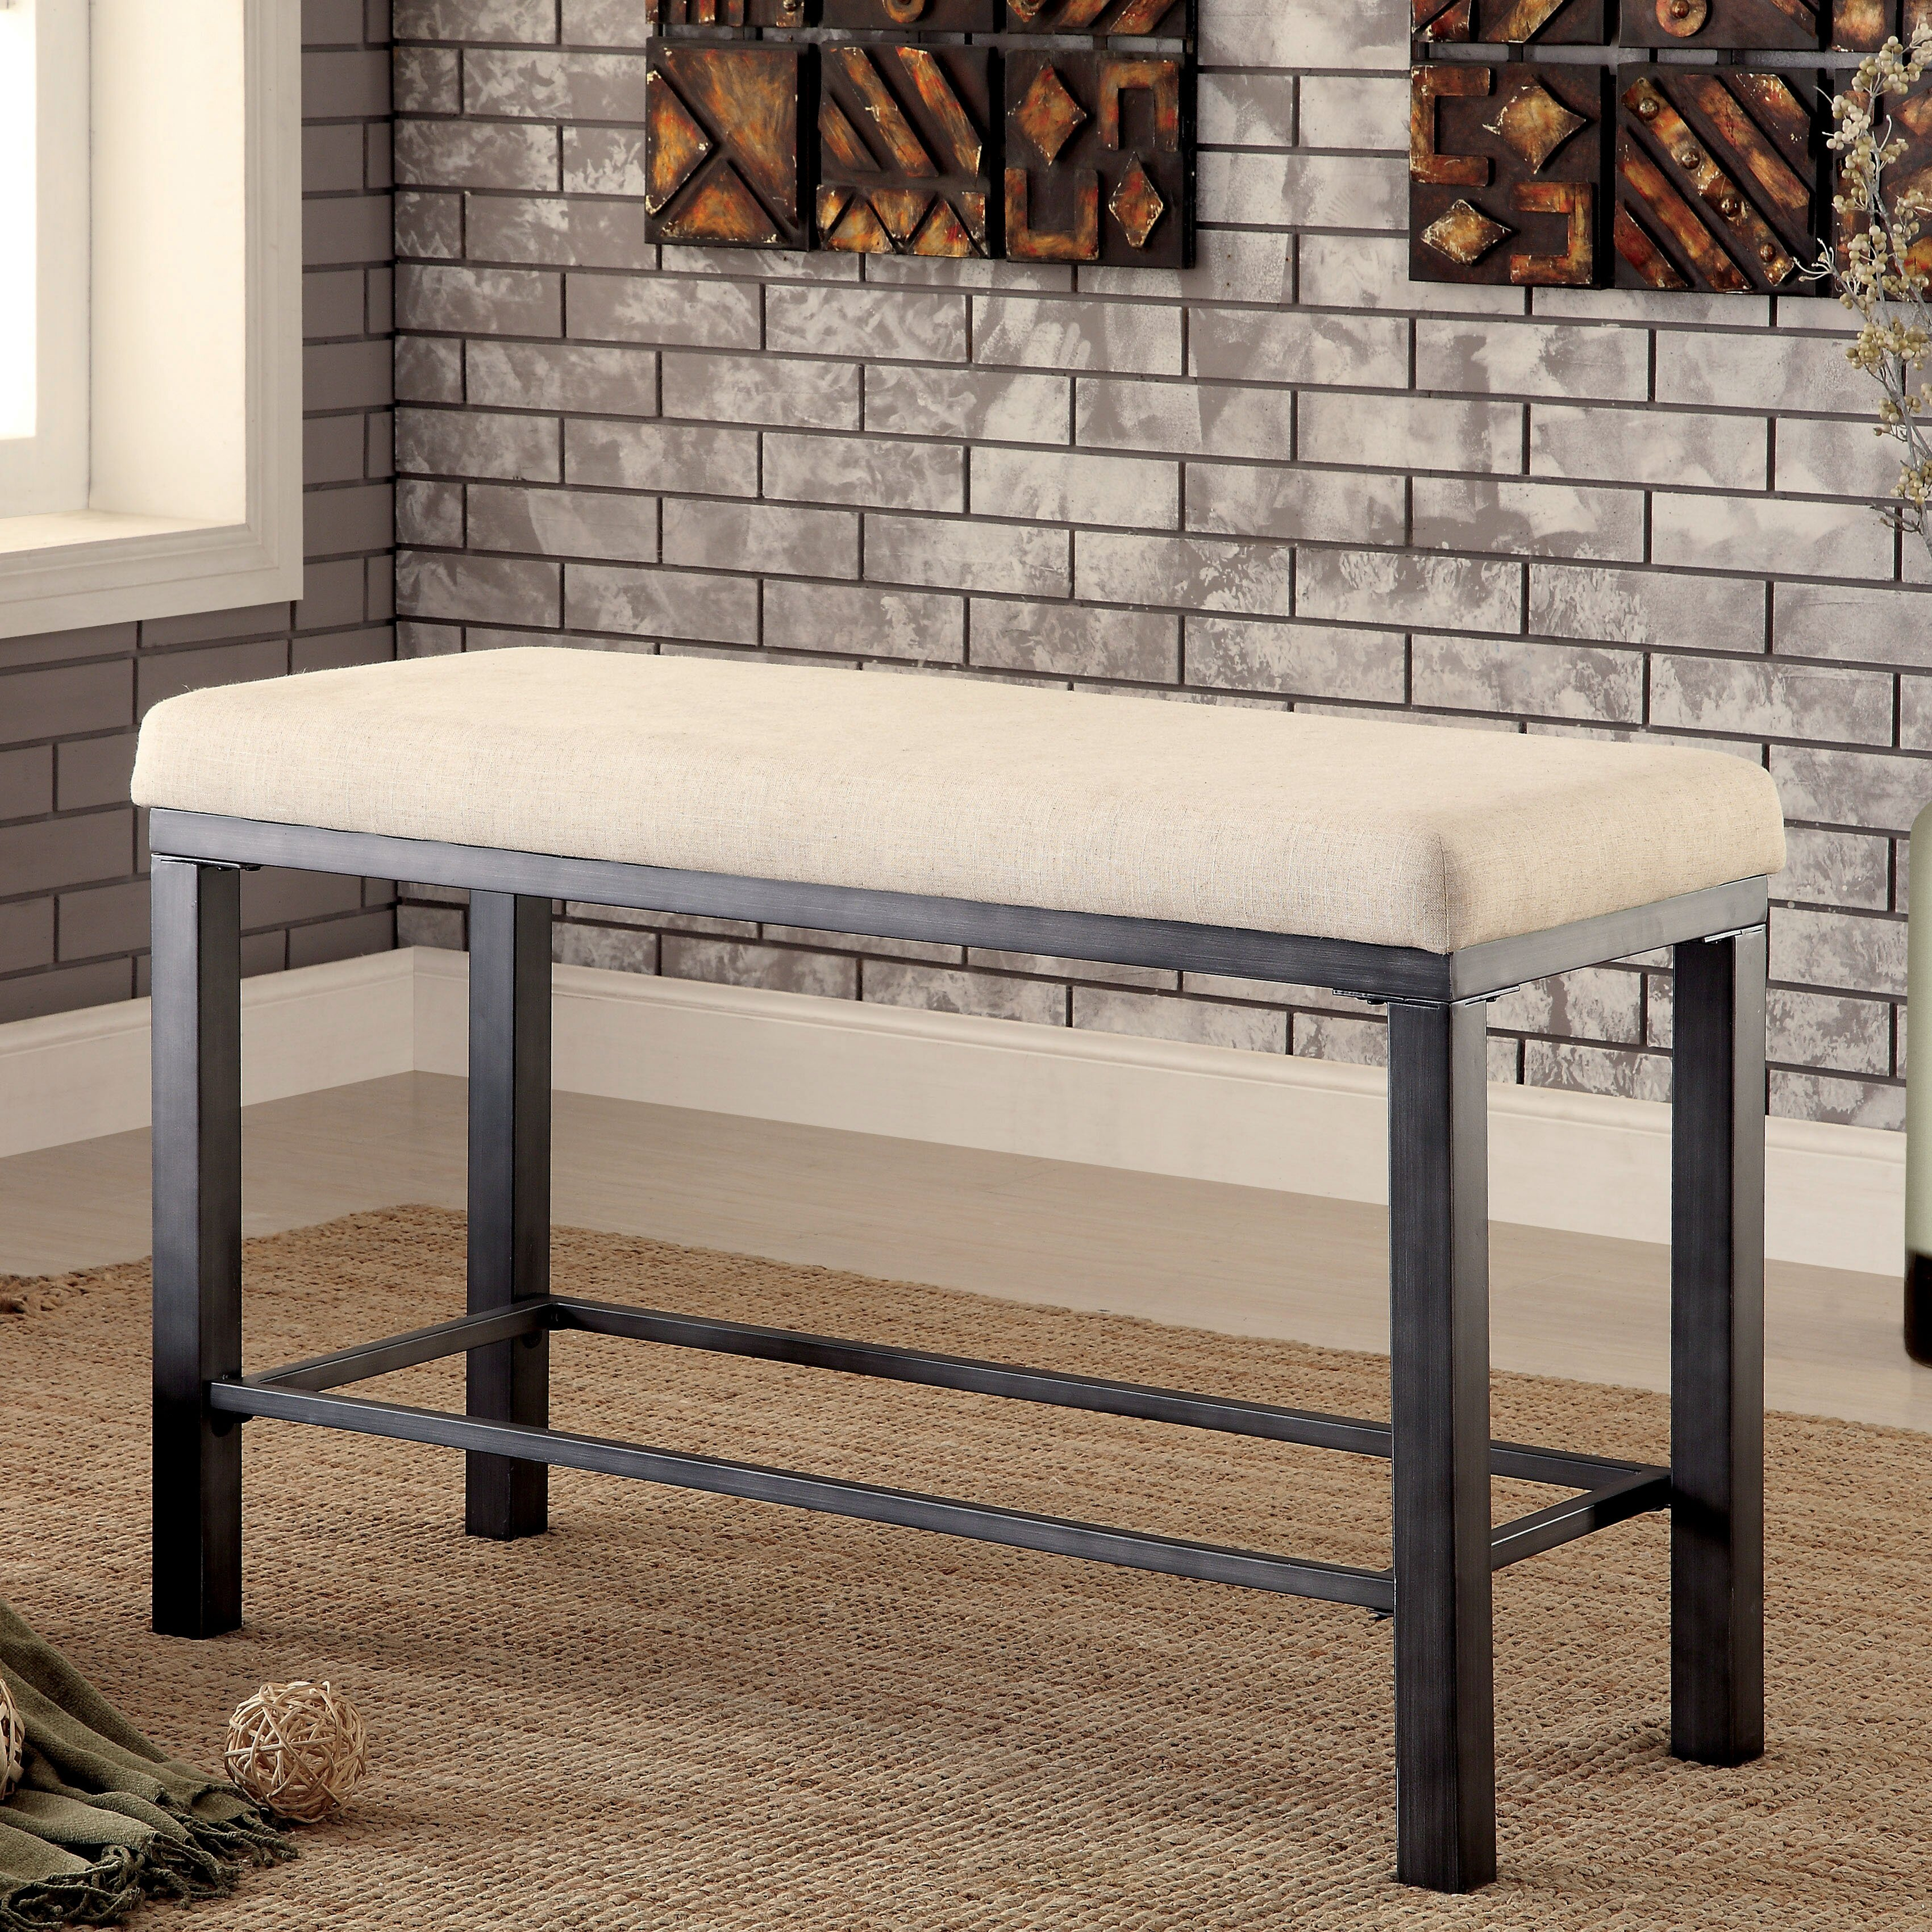 Hokku Designs Alleso Upholstered Kitchen Bench & Reviews